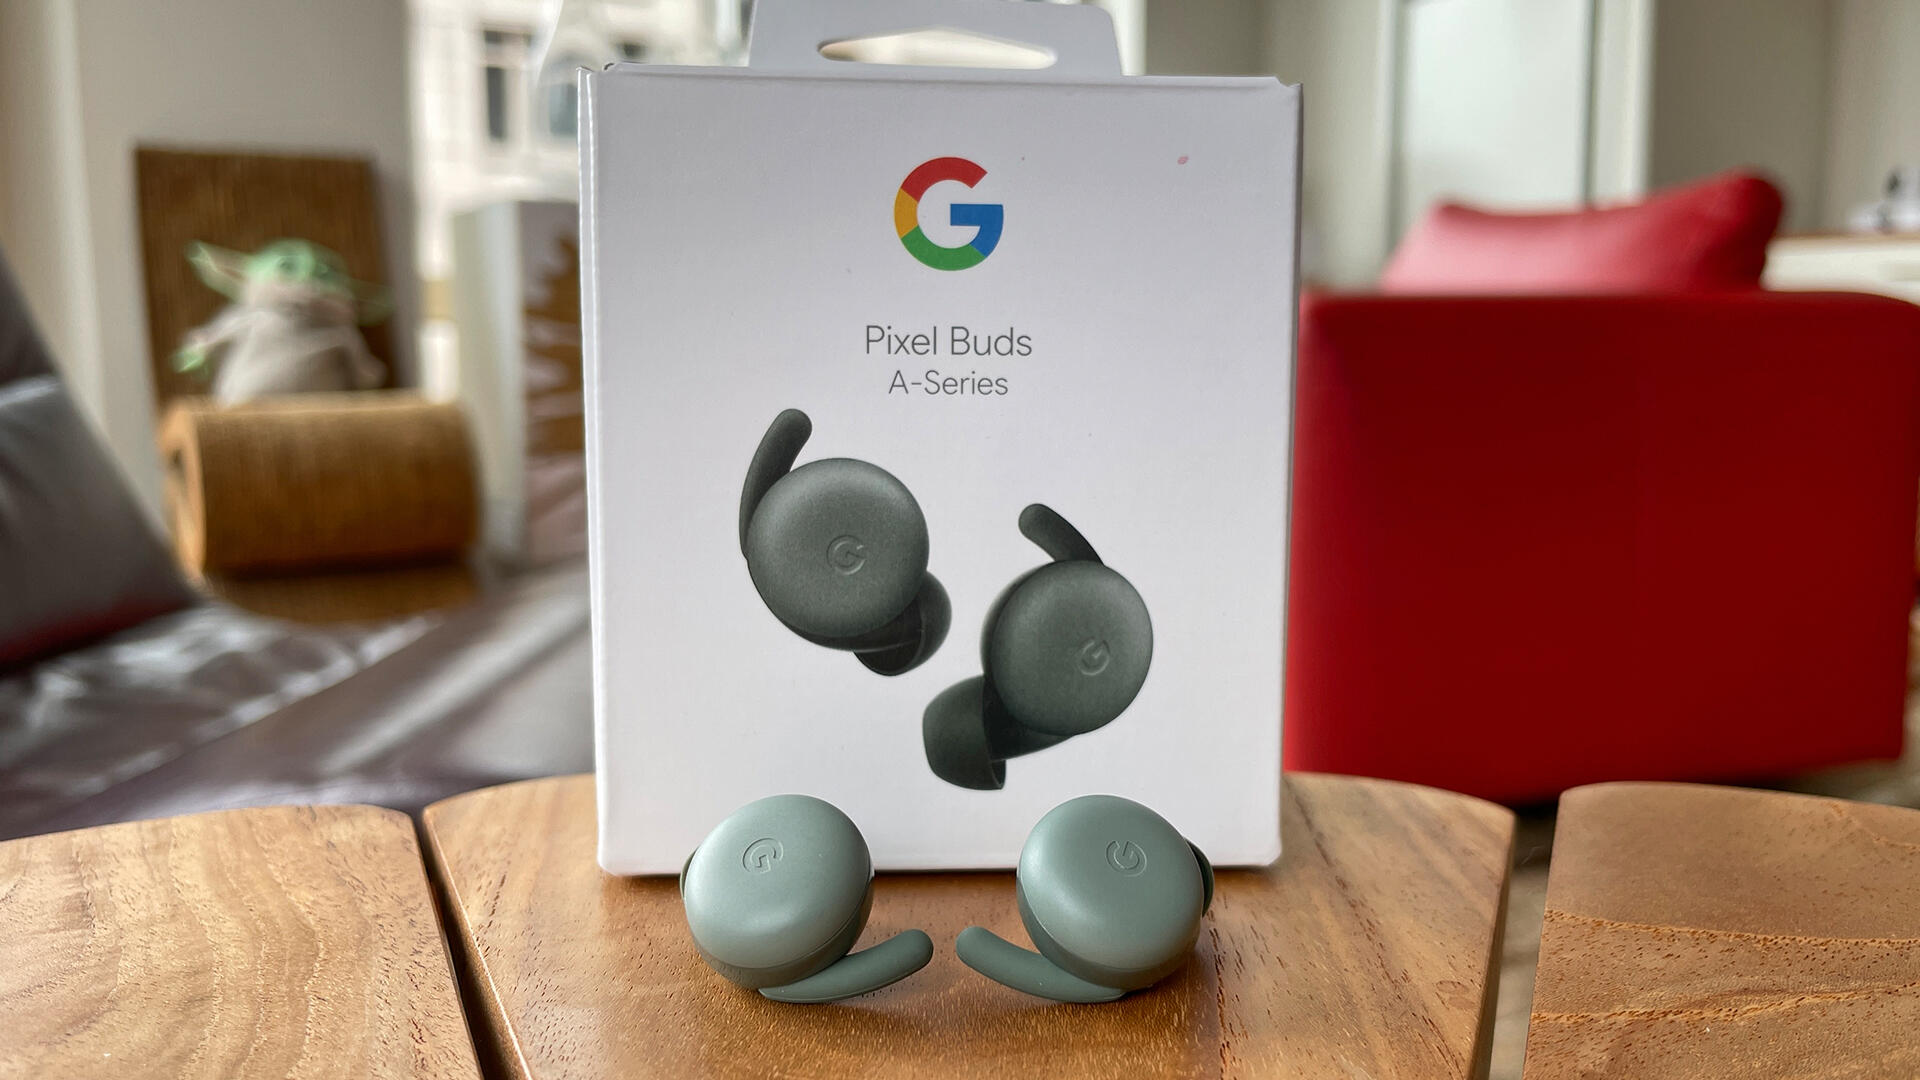 Video: Google Pixel Buds A-Series review: Excellent value Android earbuds